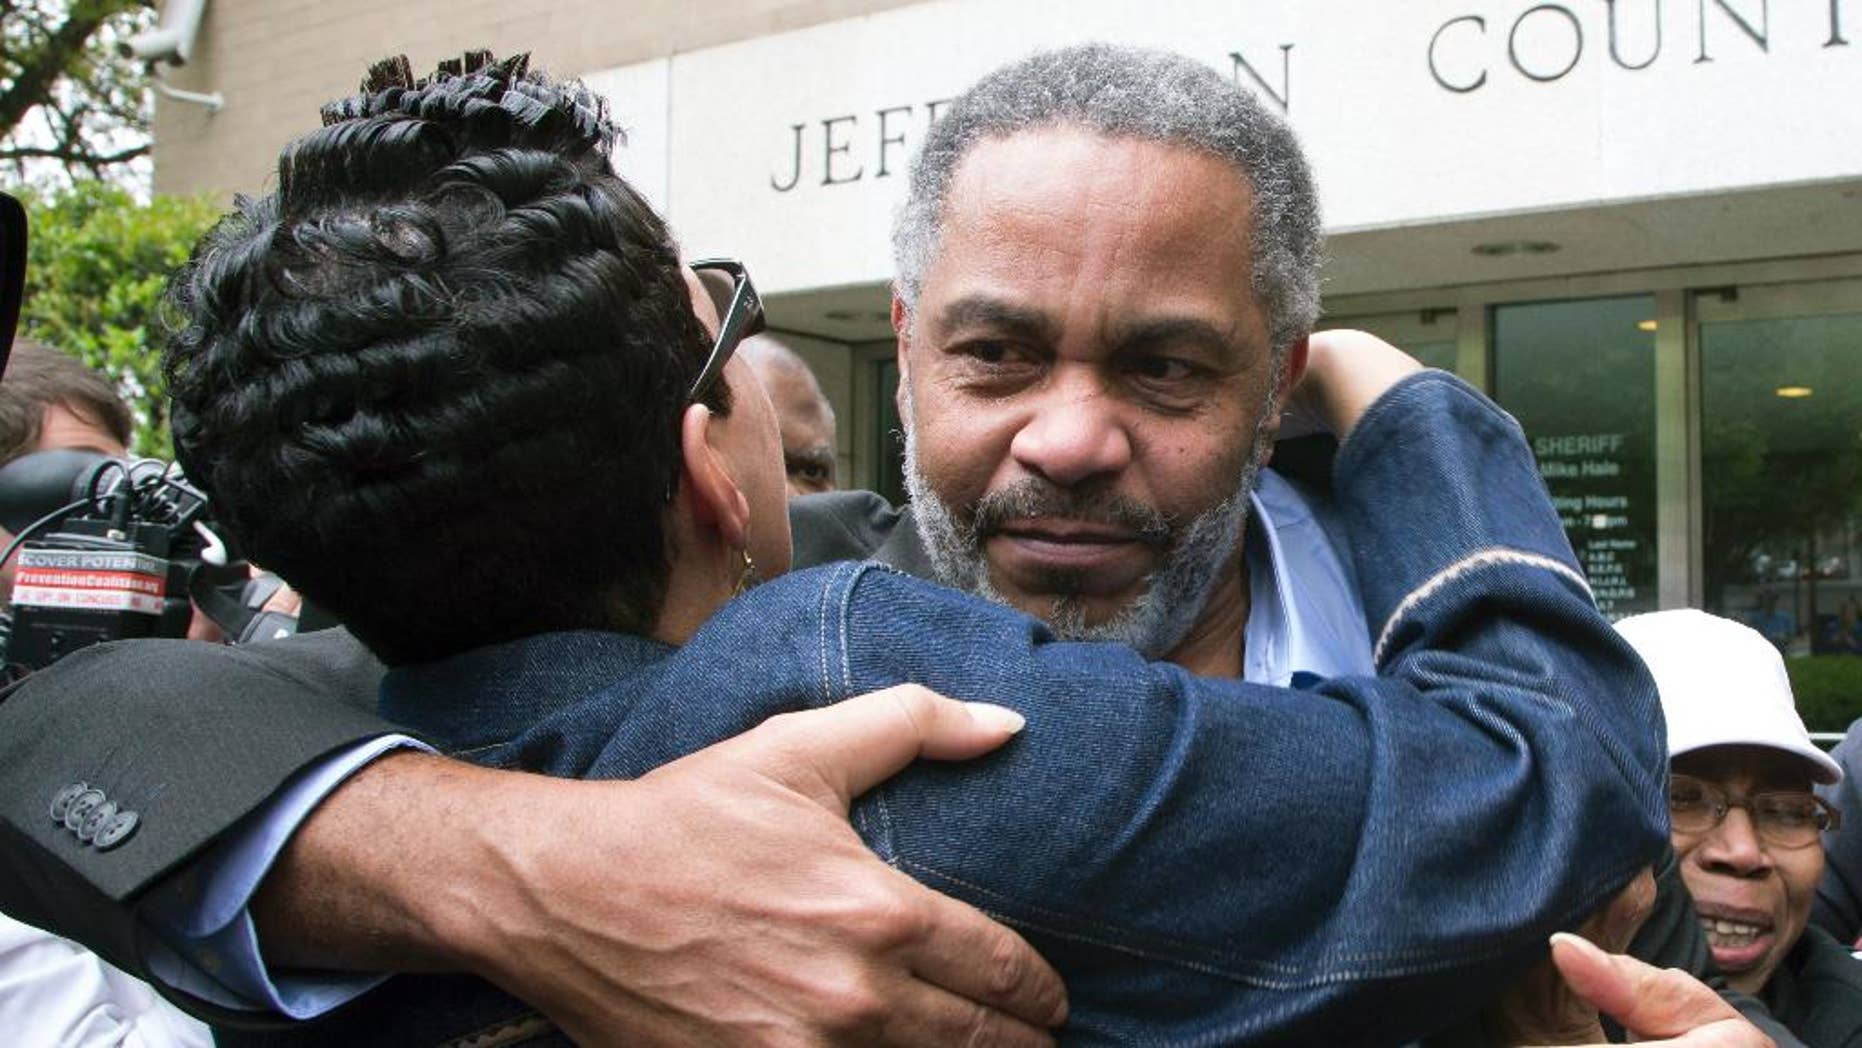 FILE - In this April 3, 2015 file photo, Pat Turner, left, hugs Anthony Ray Hinton as he leaves the Jefferson County jail in Birmingham, Ala. Hinton spent nearly 30 years on Alabama's death row, and was set free after prosecutors told a judge they won't re-try him for the 1985 slayings of two fast-food managers. Defense attorneys said the release of Hinton, after nearly 30 years on Alabama's death row is an argument for the establishment of a conviction integrity unit to investigate claims of innocence.  (AP Photo/Hal Yeager)